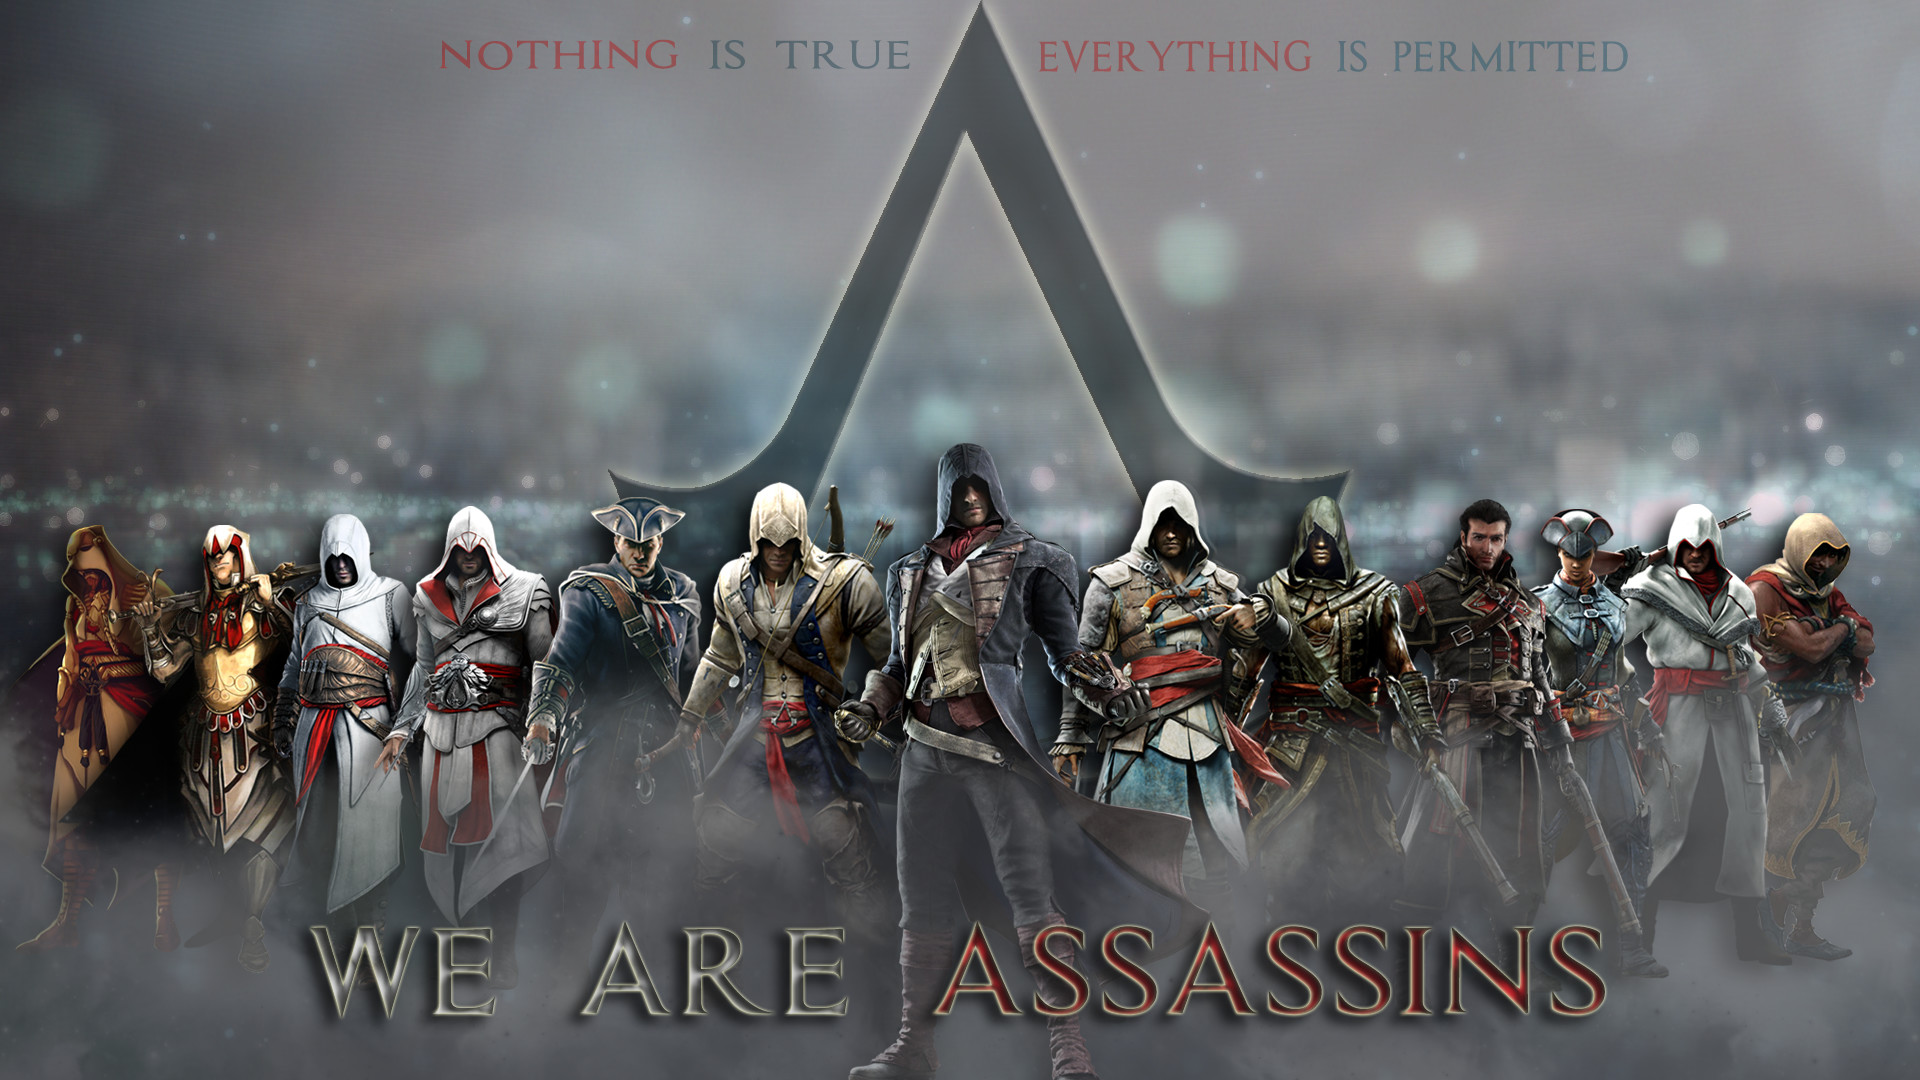 1920x1080 Assassin's Creed: Assassins Wallpaper by TrinityNexus384 Assassin's Creed: Assassins  Wallpaper by TrinityNexus384